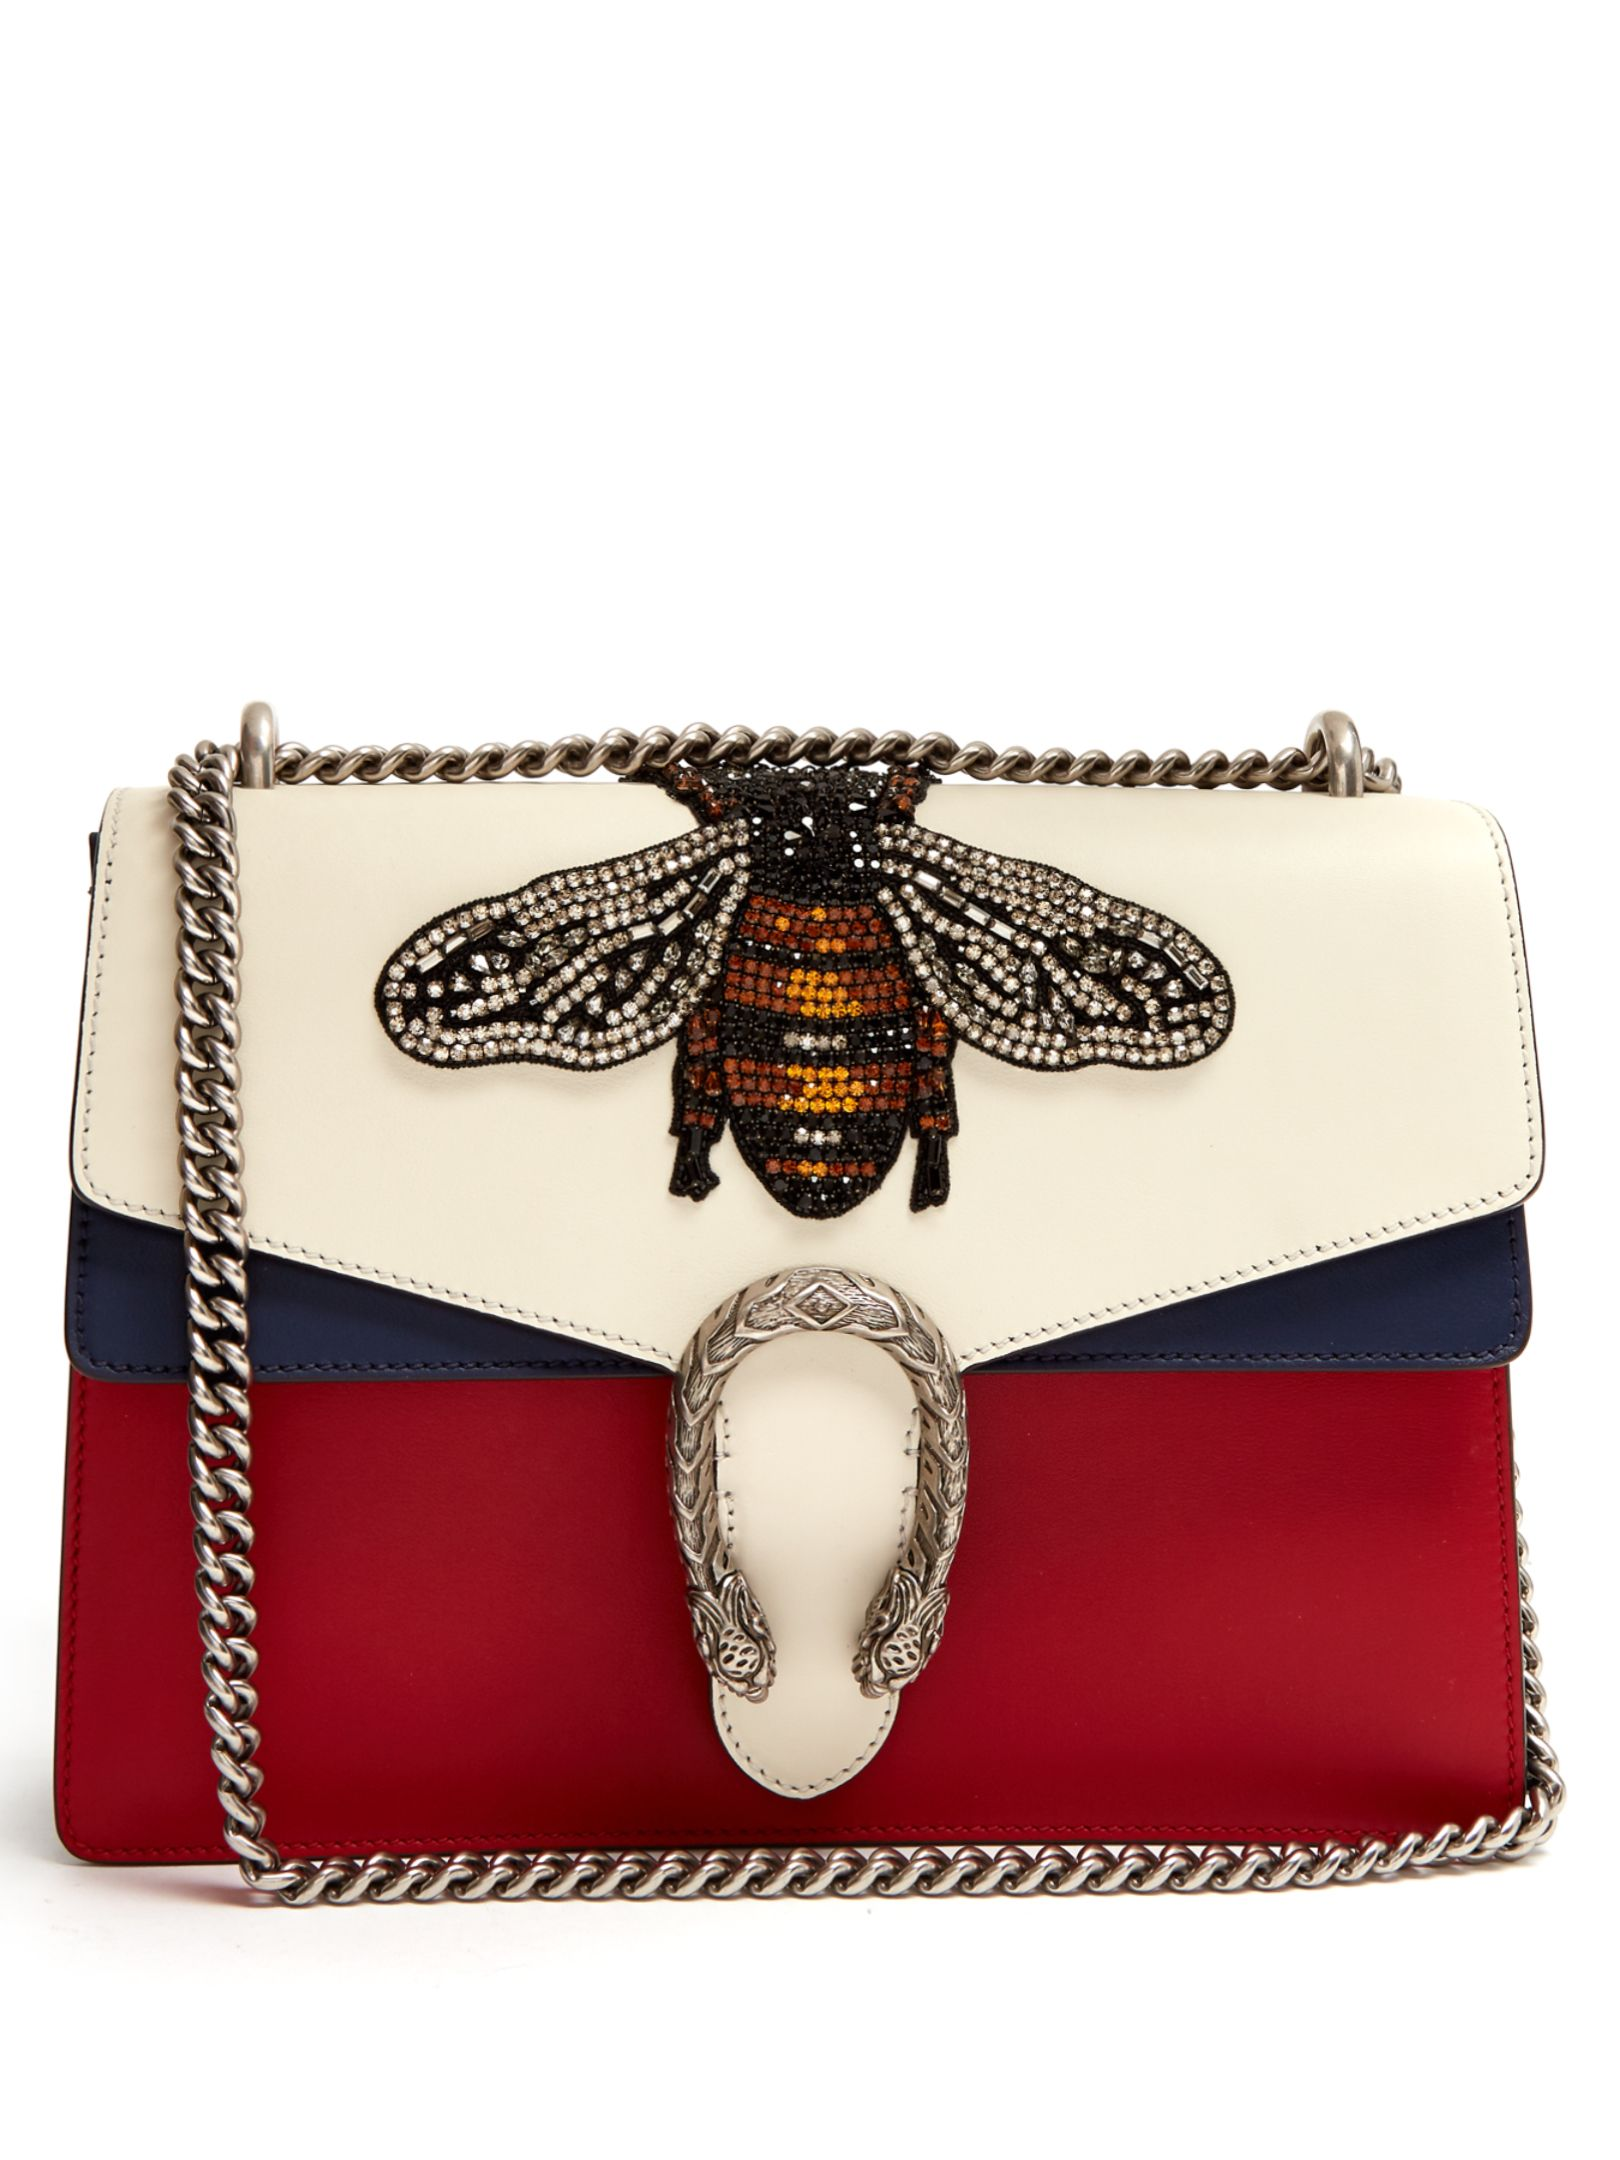 17dfa21f2e8 GUCCI Dionysus large bee appliqué shoulder bag